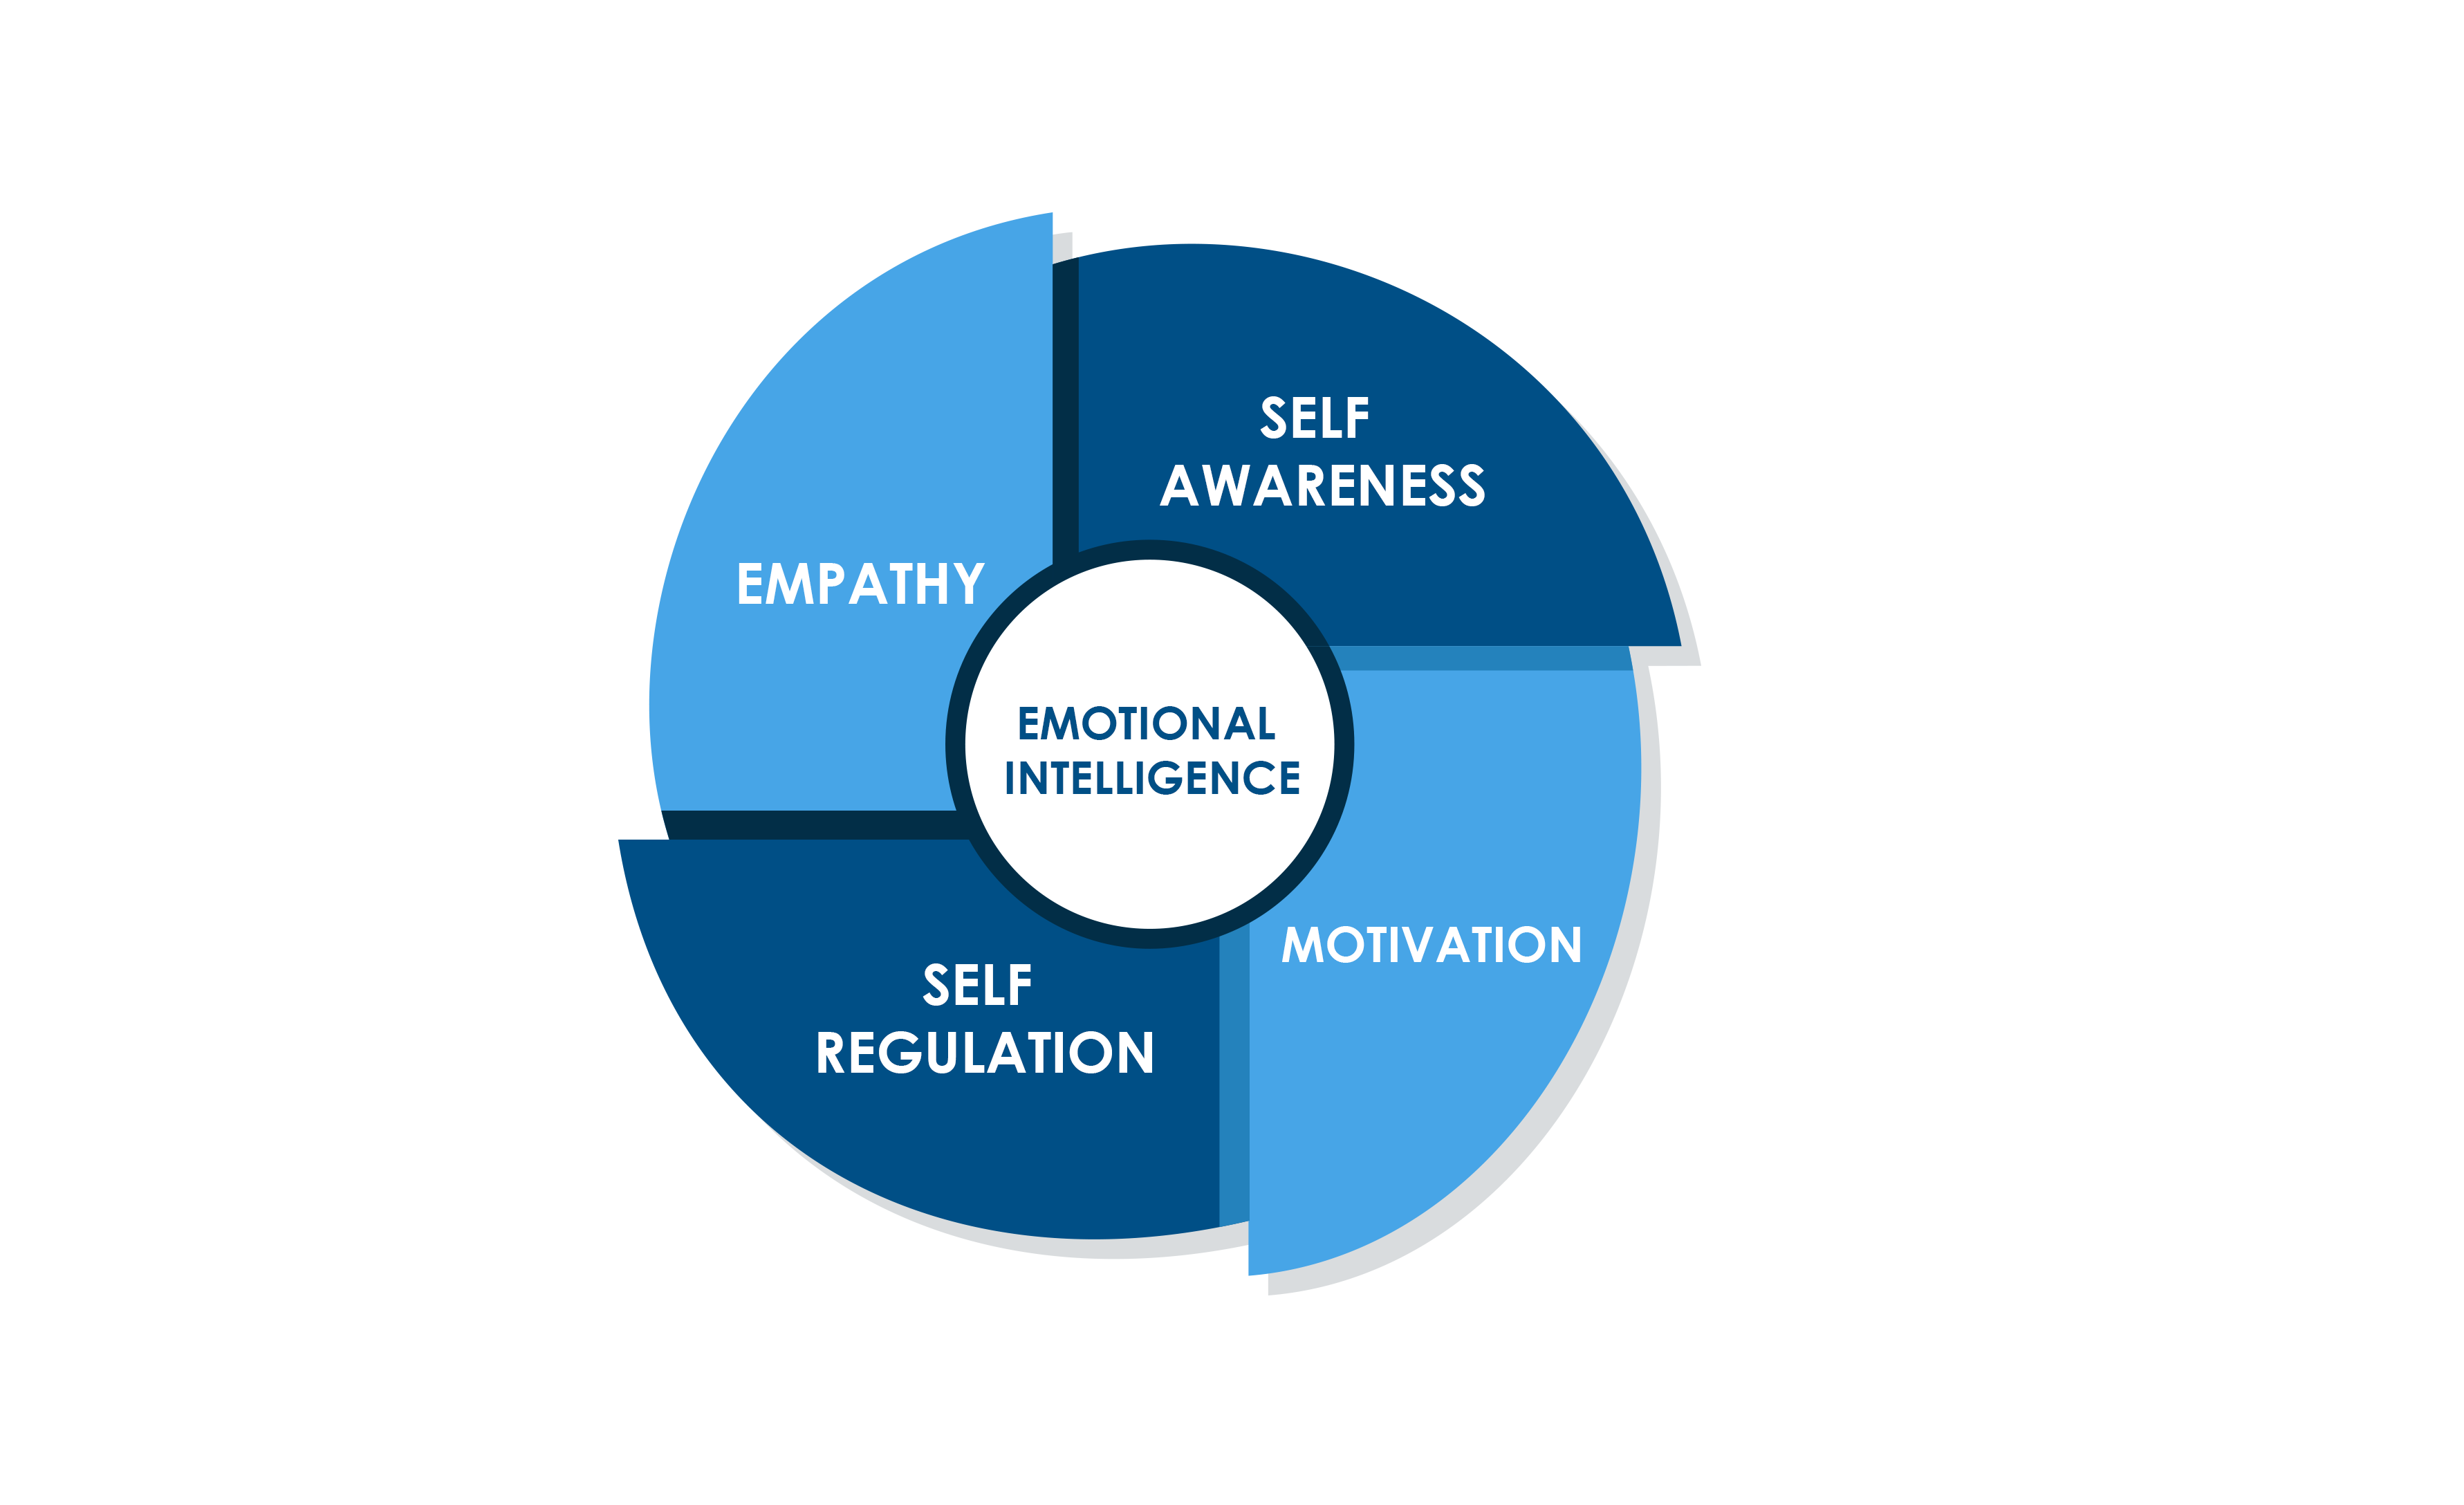 emotional-intelligence-in-workplaces-1-openhrms